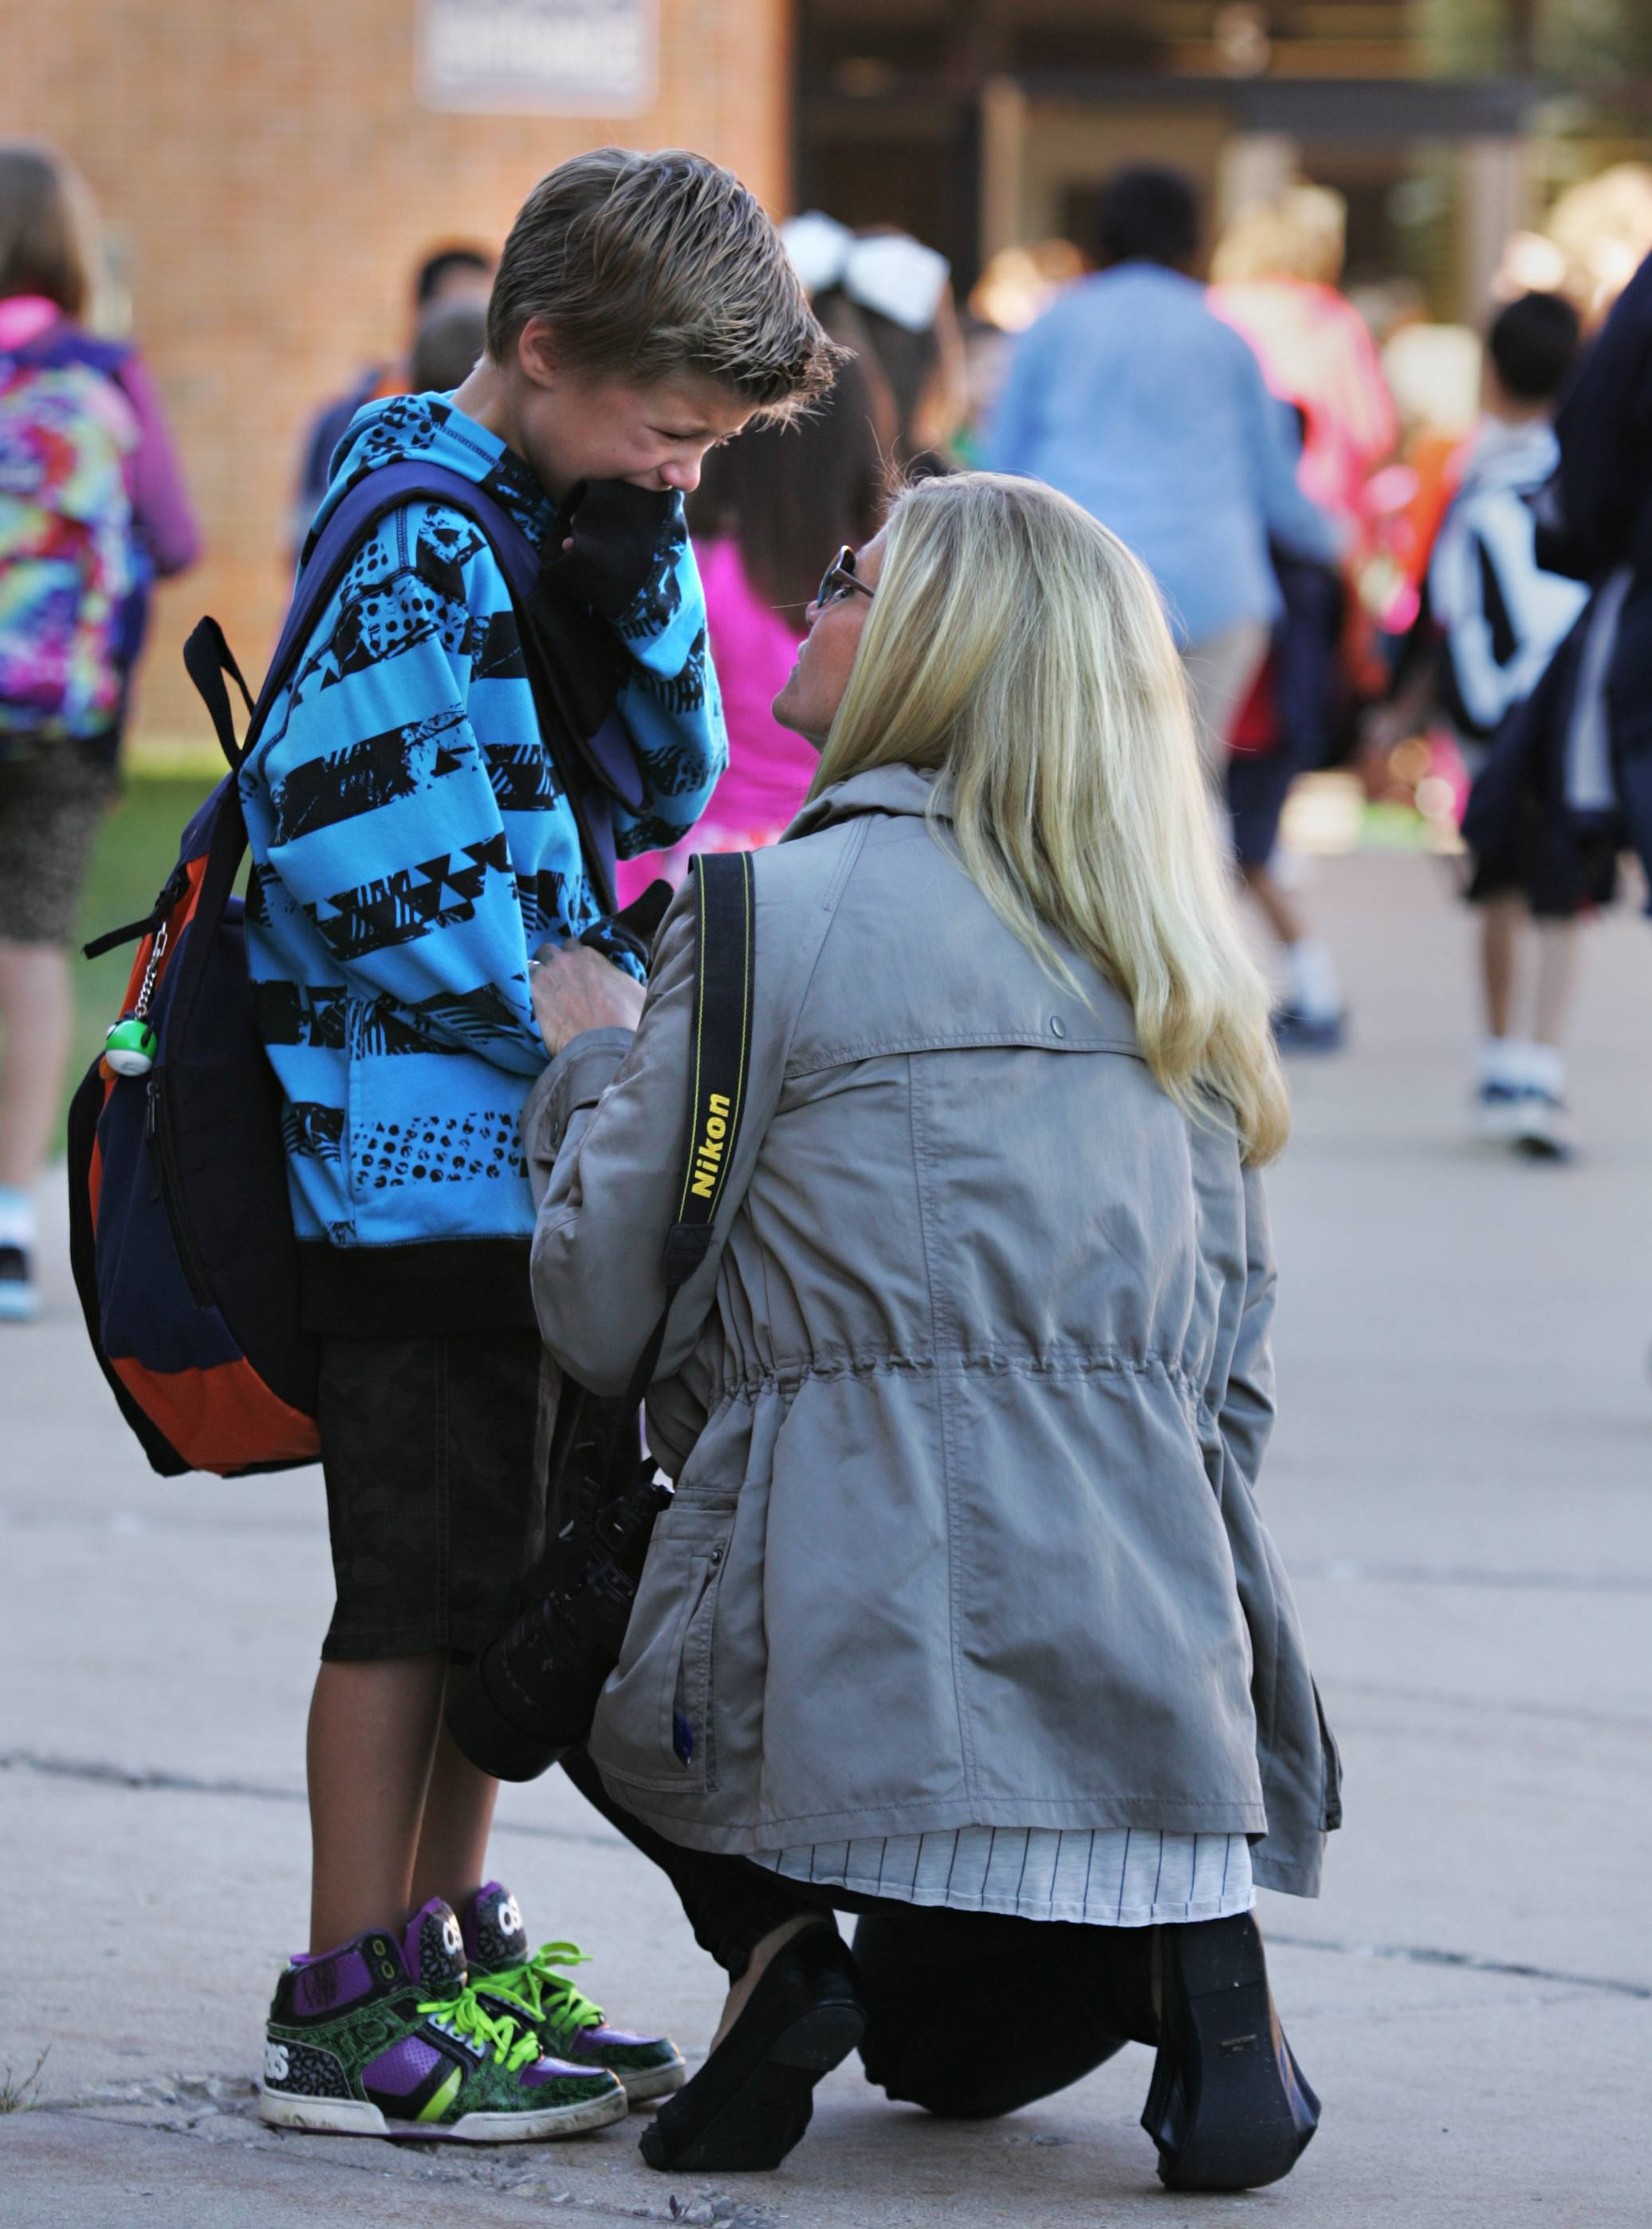 Second-grader Brennan Sproule is consoled by his mother Tricia Wednesday morning before the first day of class at Westfield Community School, where Brennan is attending class for the first time. The Sproules moved to a different neighborhood in Algonquin over the summer, so Brennan wasn't sure about the new building, his new teacher and all new classmates.